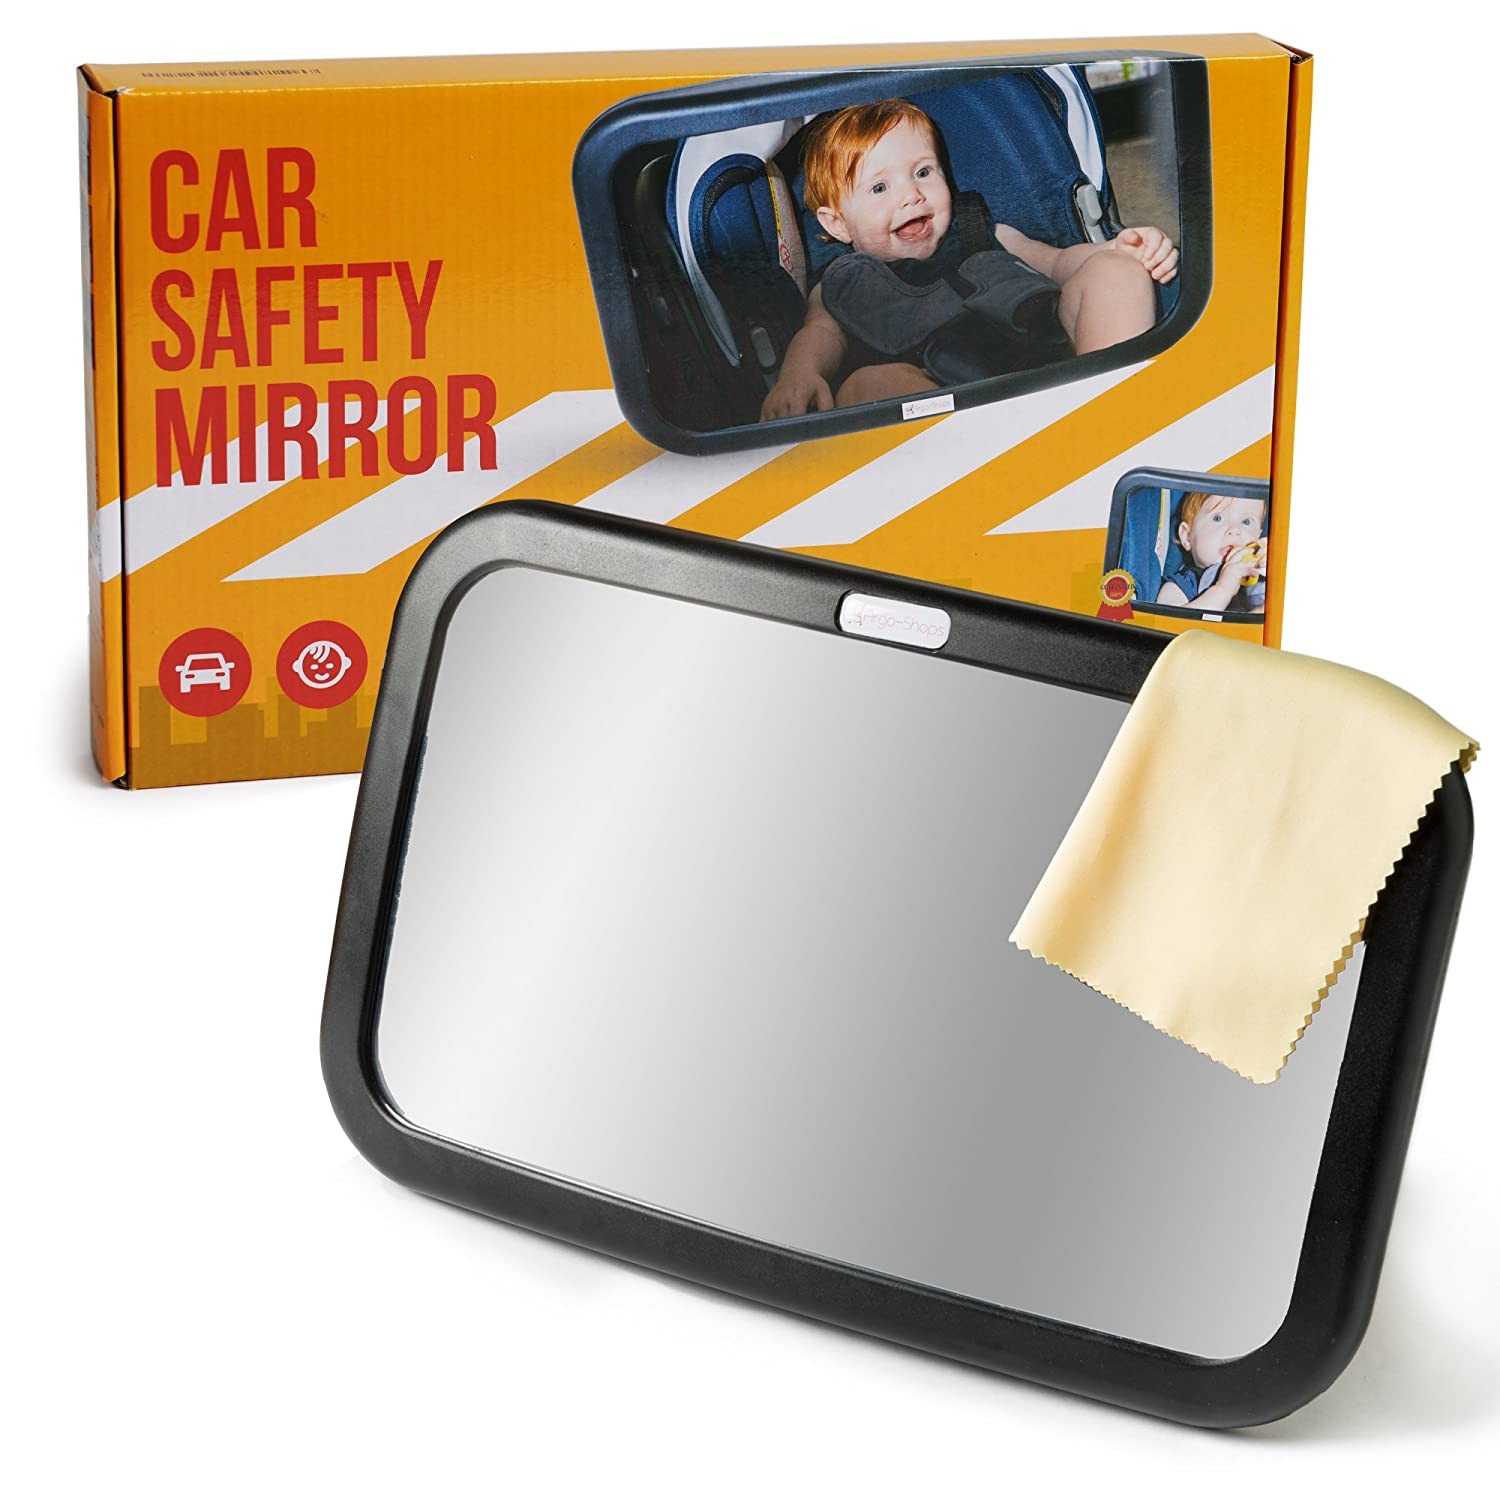 ARGO-SHOPS Baby- baby mirrors - Baby mirror car .car seat mirror . backseat mirror for baby. 2 Free Bonuses: a Cleaning cloth + eBook.